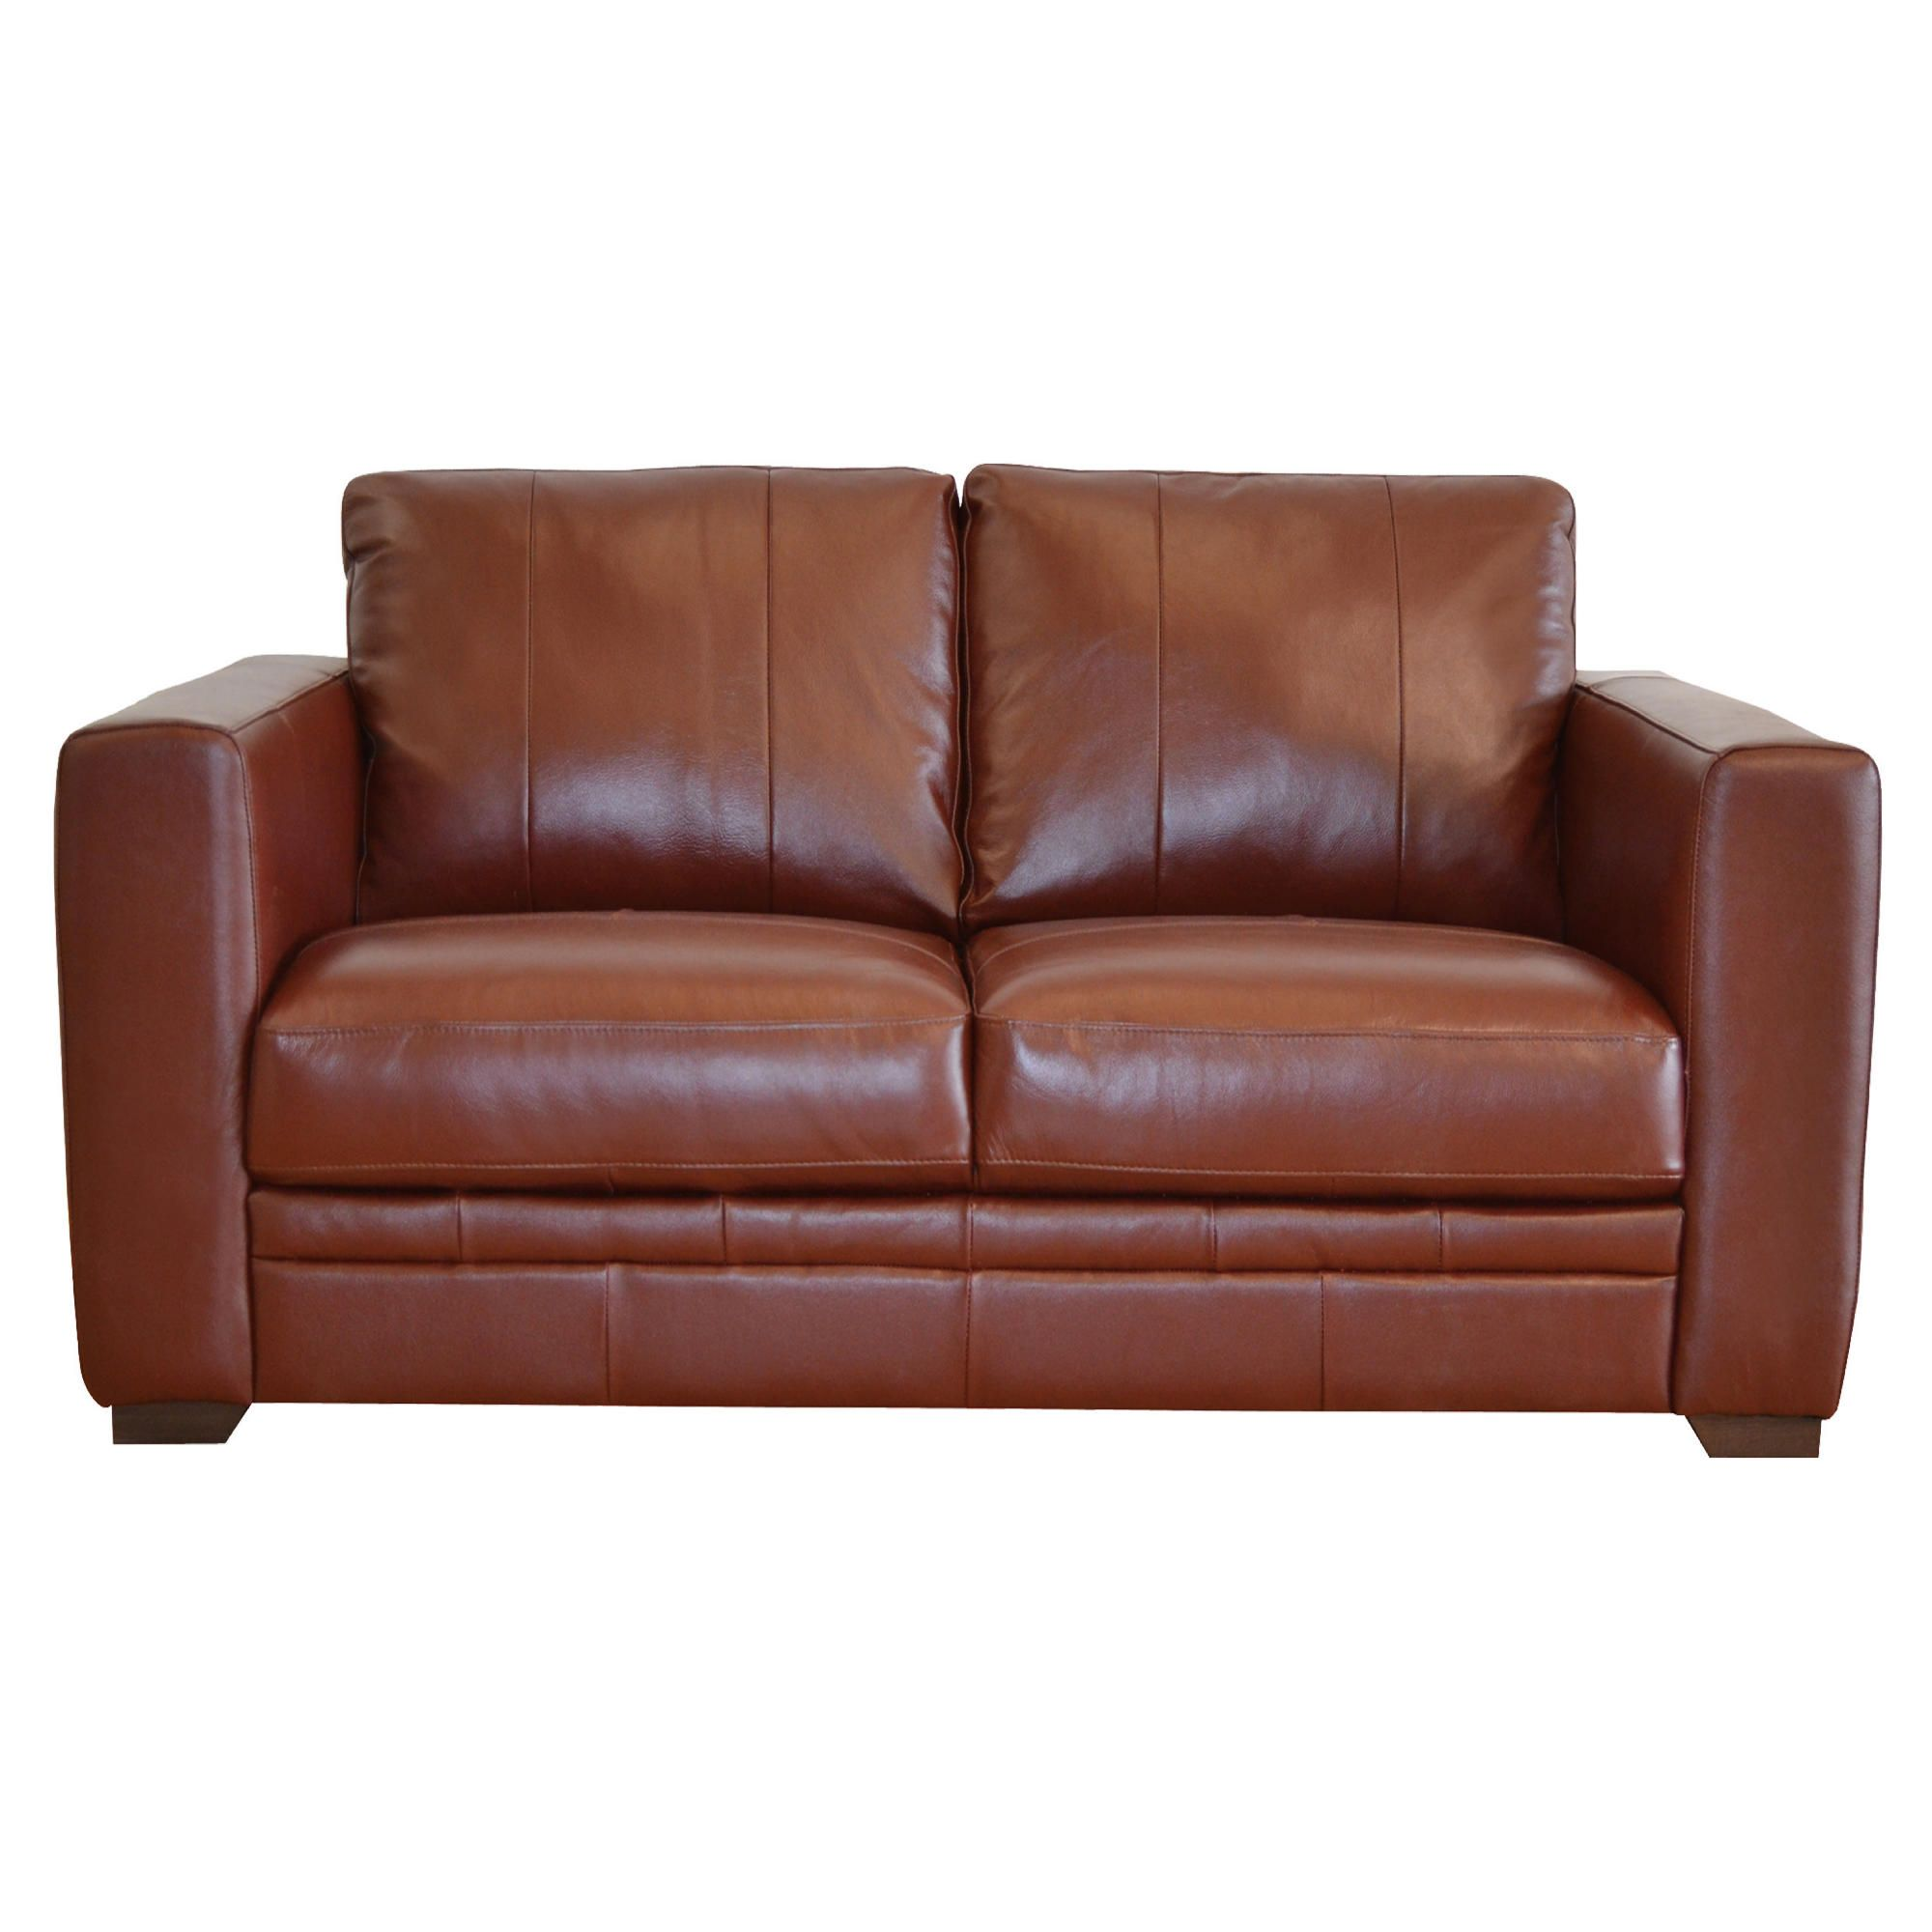 Naples Leather Small Sofa, Chestnut at Tesco Direct